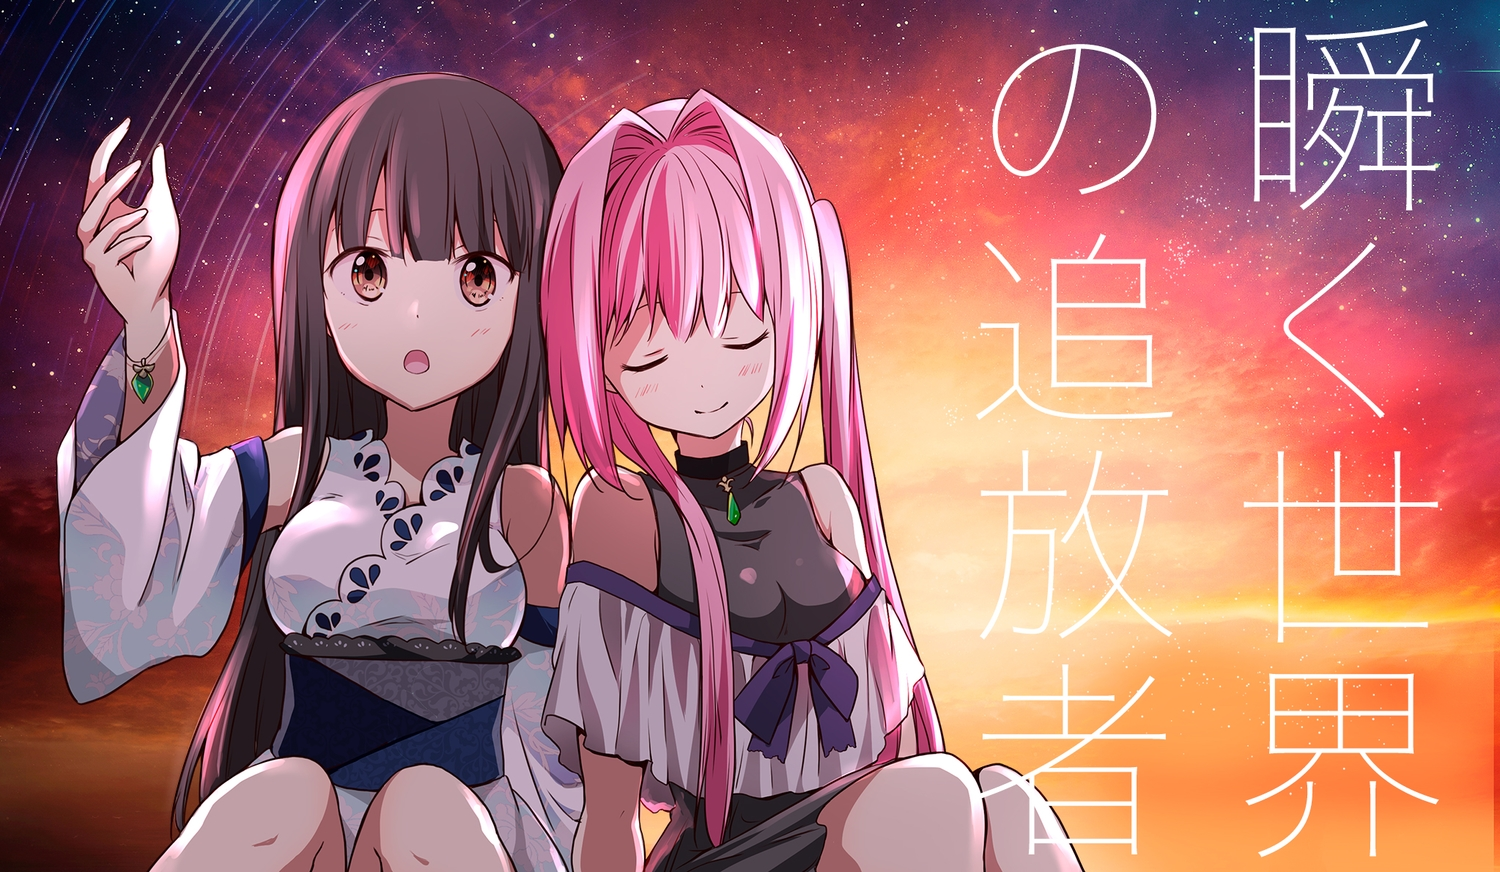 2girls breasts brown_eyes brown_hair chijou_noko chikanoko choker clouds dress japanese_clothes long_hair pink_hair ragho_no_erika sky stars sunset tsugou_makina twintails wristwear